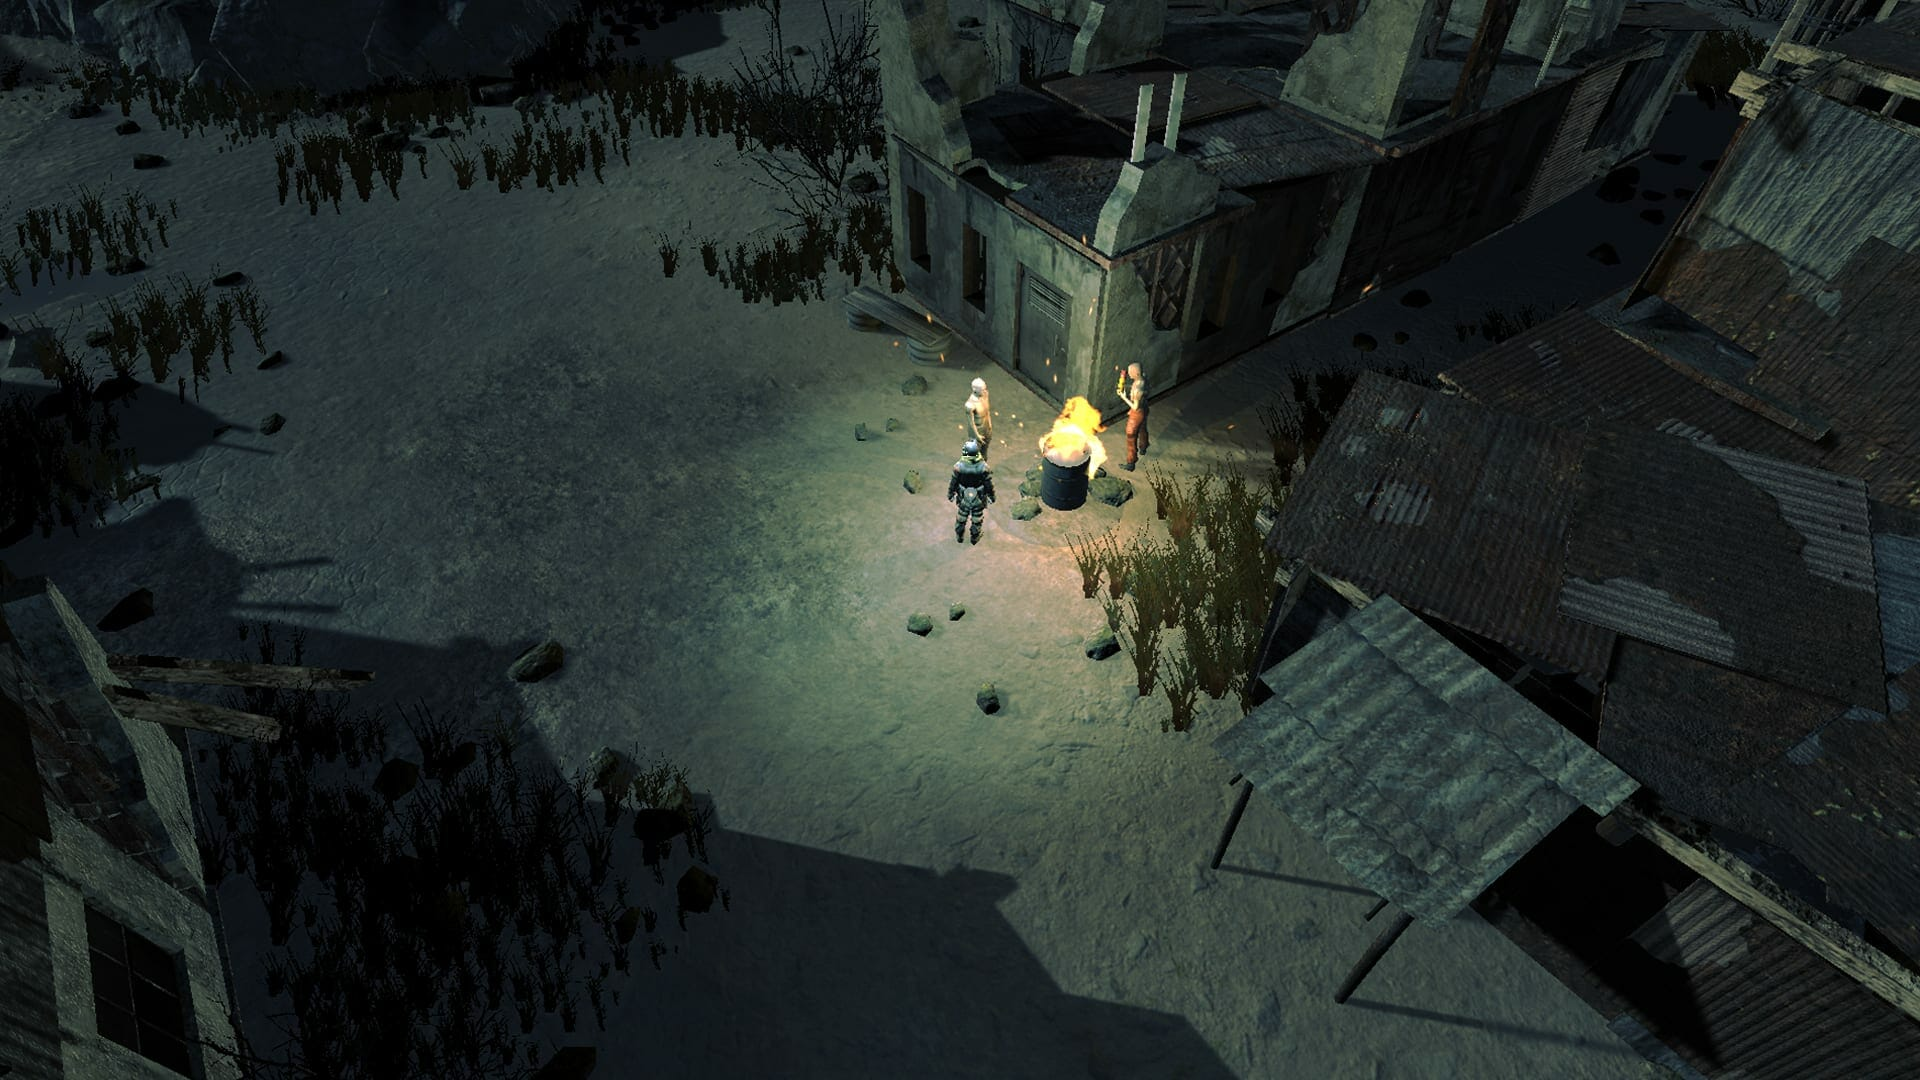 Encased Screenshot 4 - Dark Crystal Games Announces Encased RPG Game